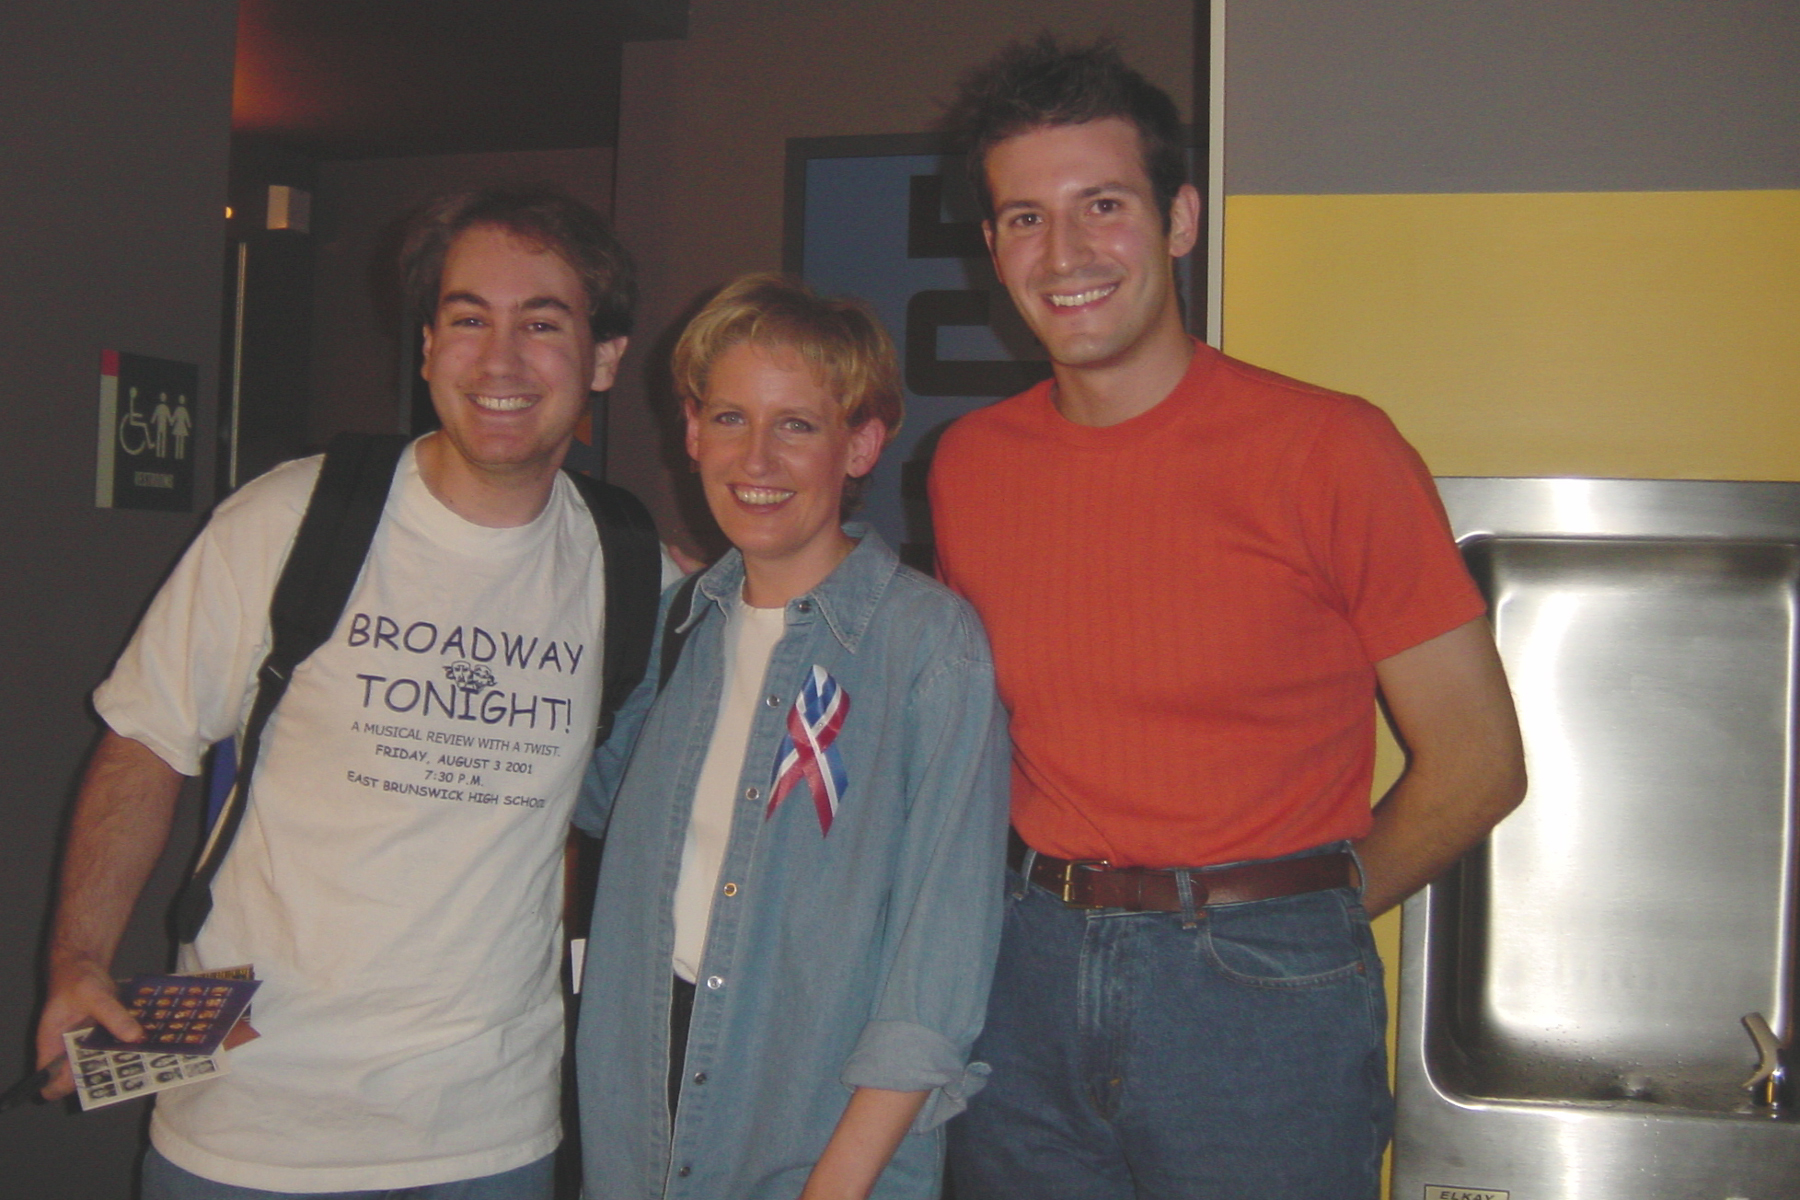 Craig and Me with Liz Callaway After The Spitfire Grill!